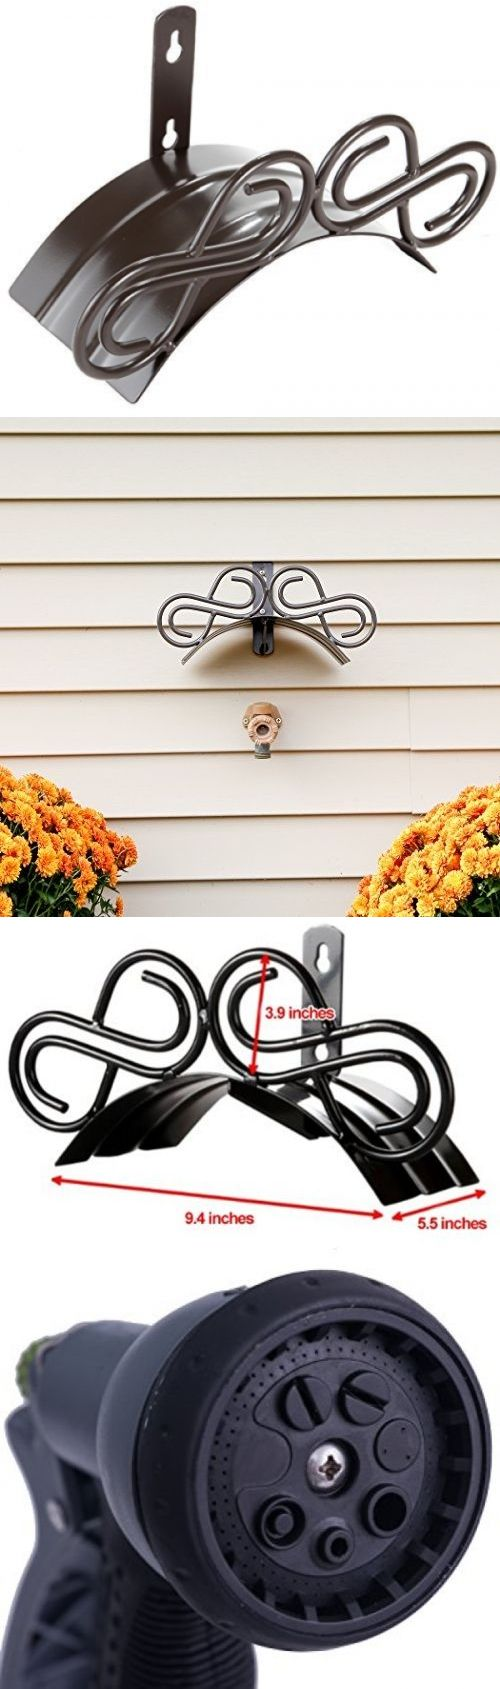 Hose Reels And Storage 46435: Decorative Garden Hose Hanger. Wall Mount  Holder Including Spray